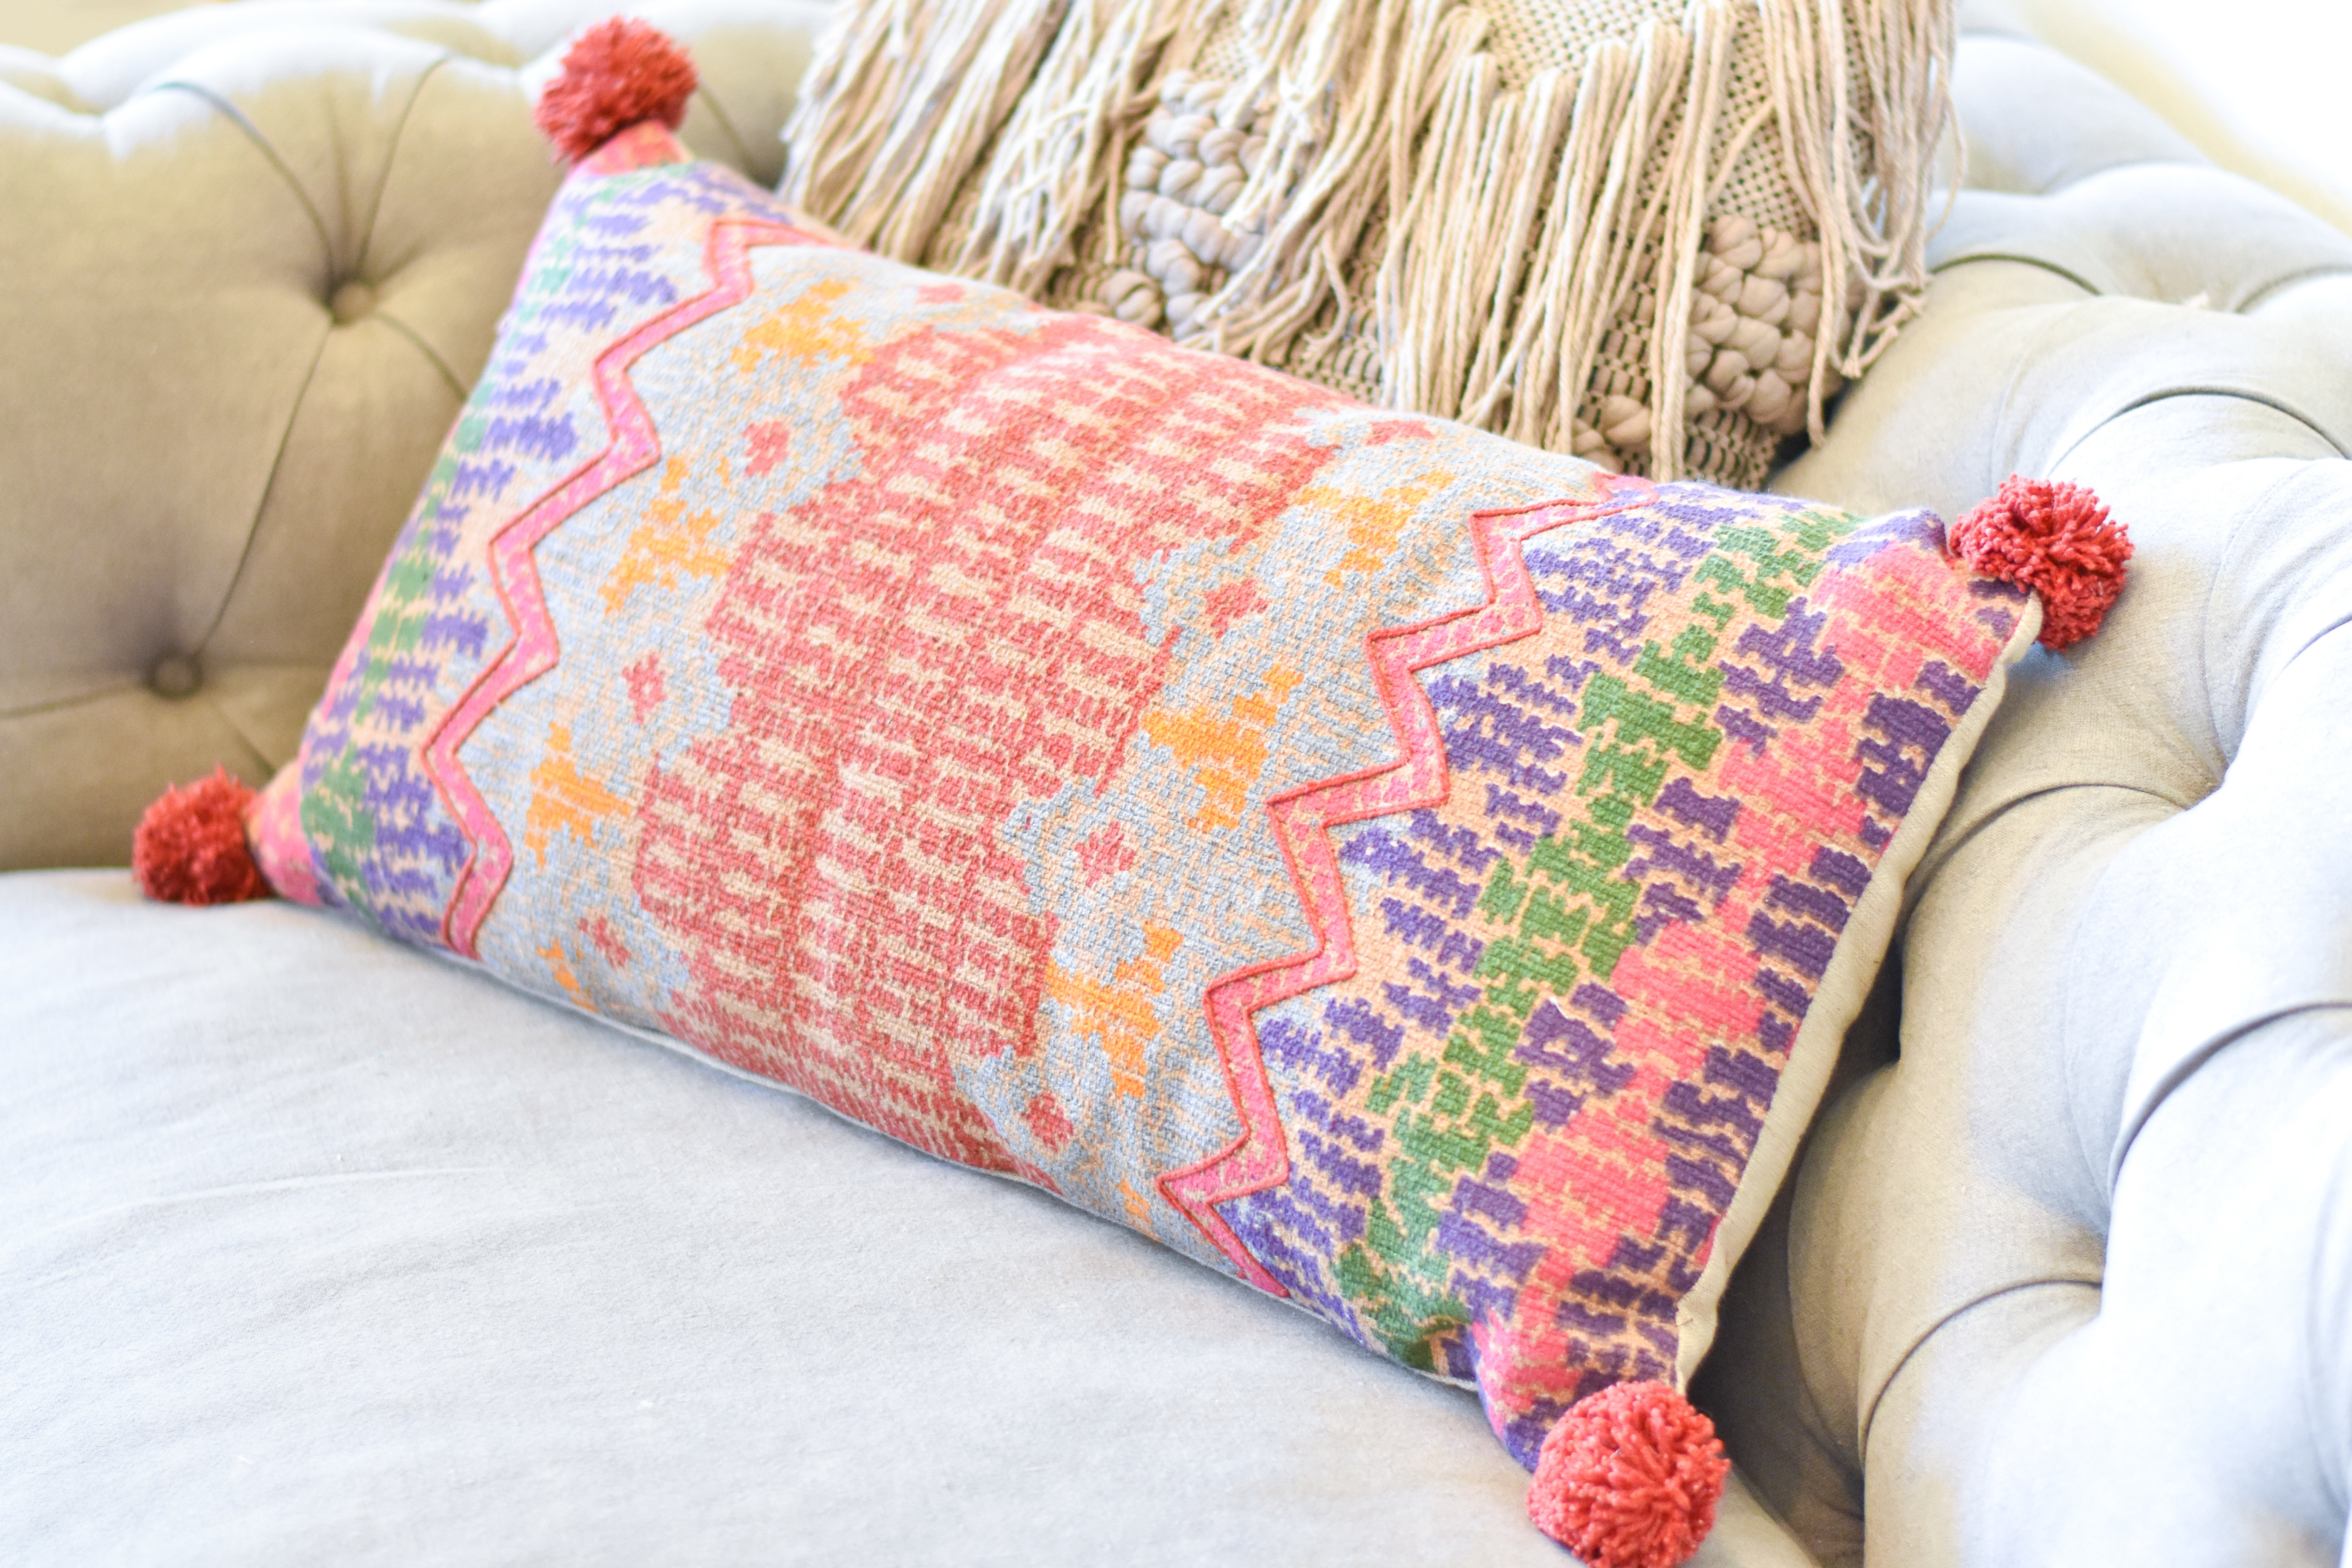 woven magic lumber pillow arst1428 RBKDSKCZ4JWSP